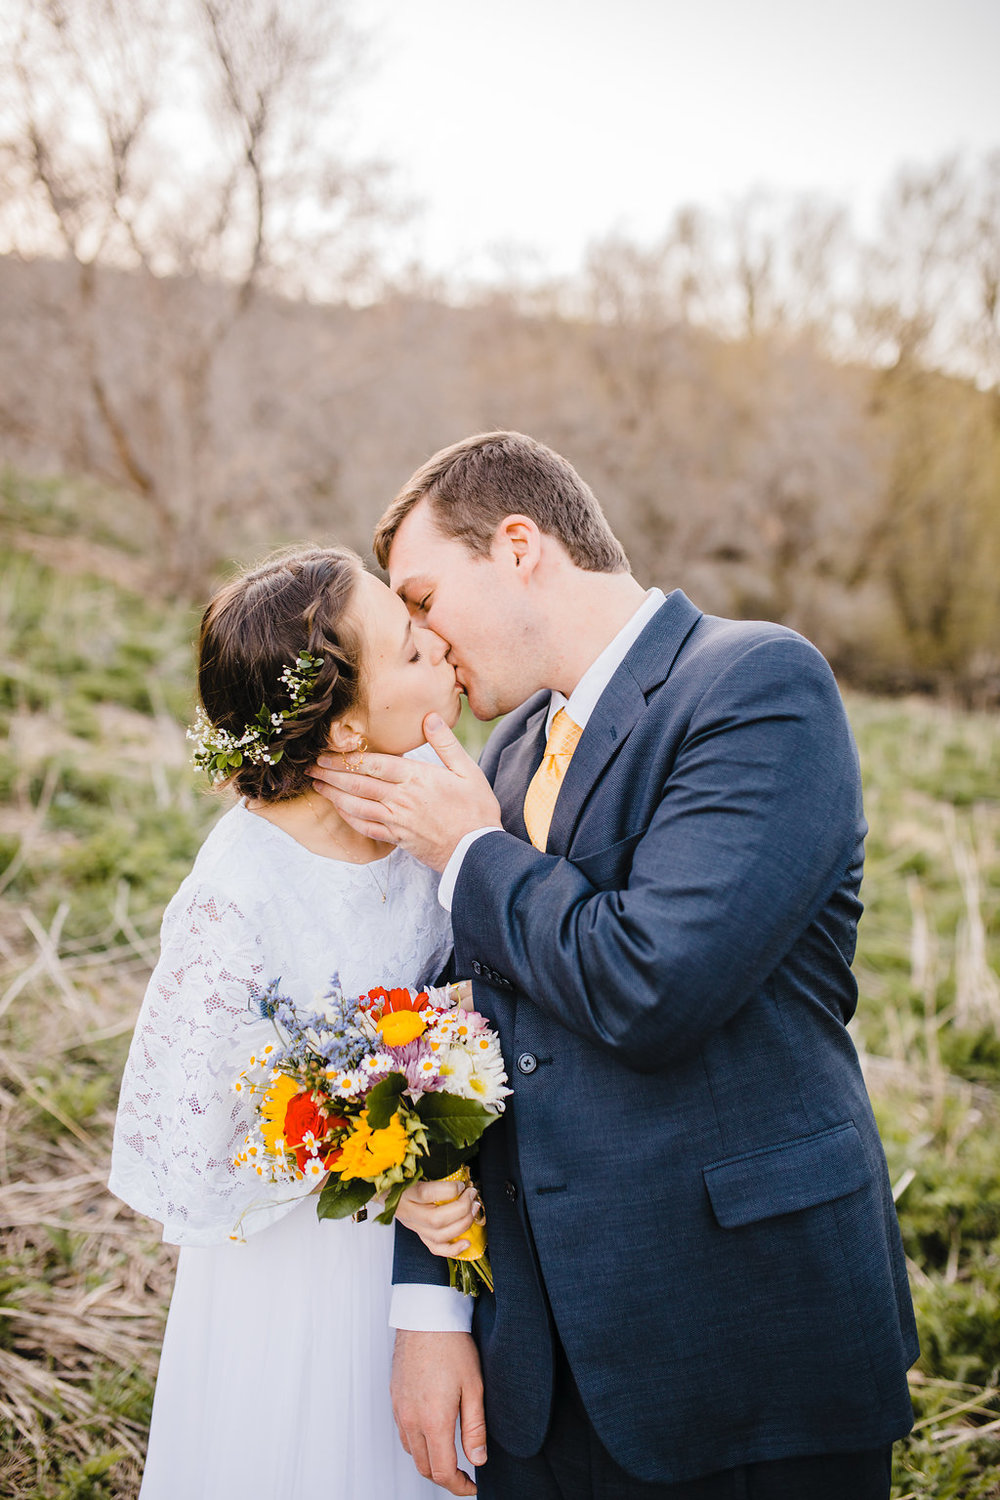 brigham city utah formals photography northern utah wedding photographer lds wedding brigham city mormon temple